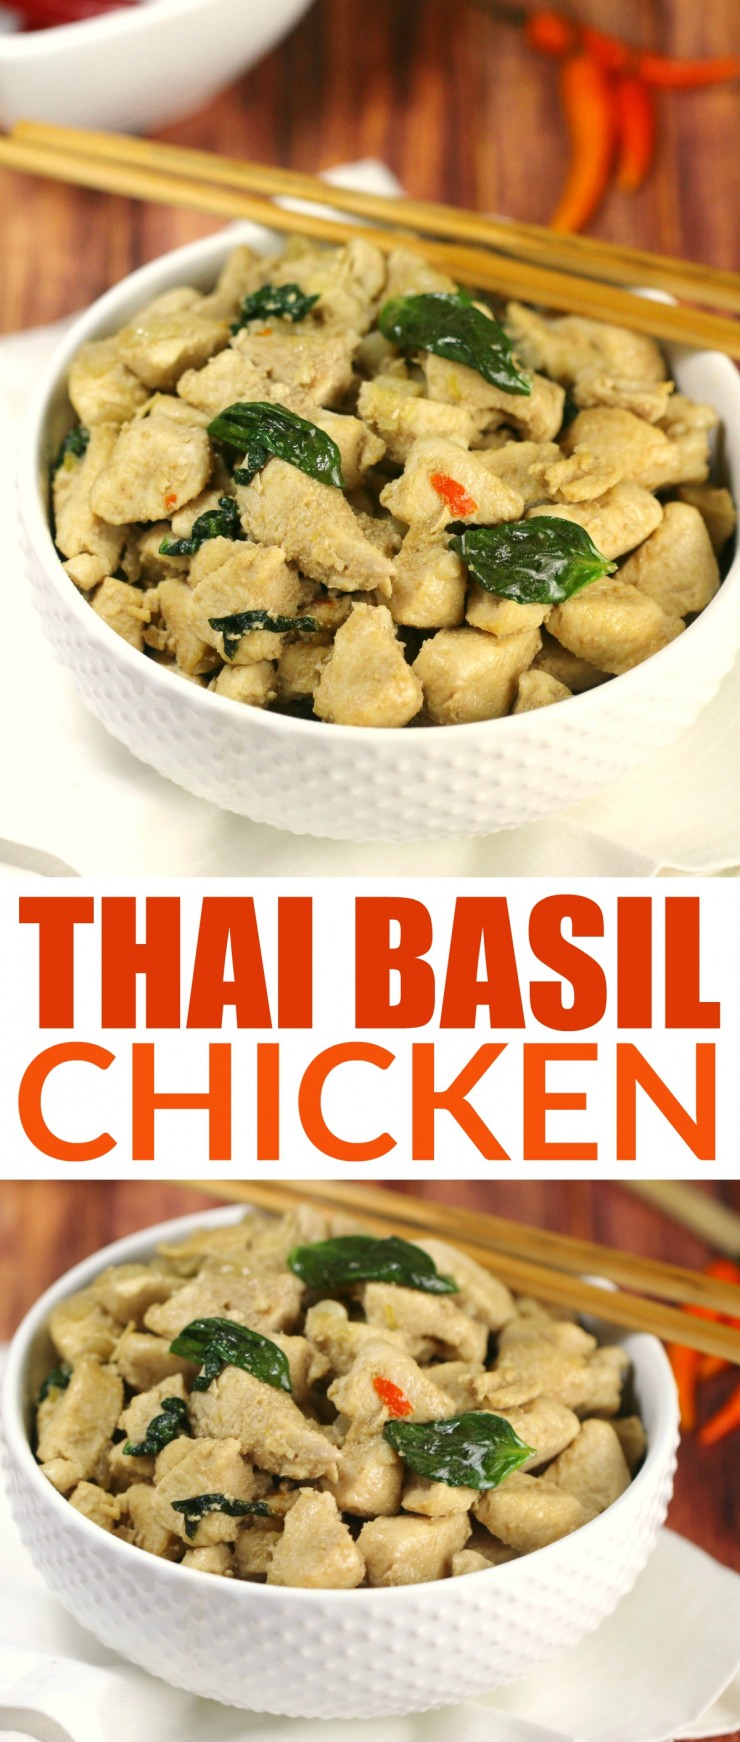 This Thai Basil Chicken recipe is a healthy makeover of a take-out favourite, it's even a great #21DayFix recipe but still full of flavour.